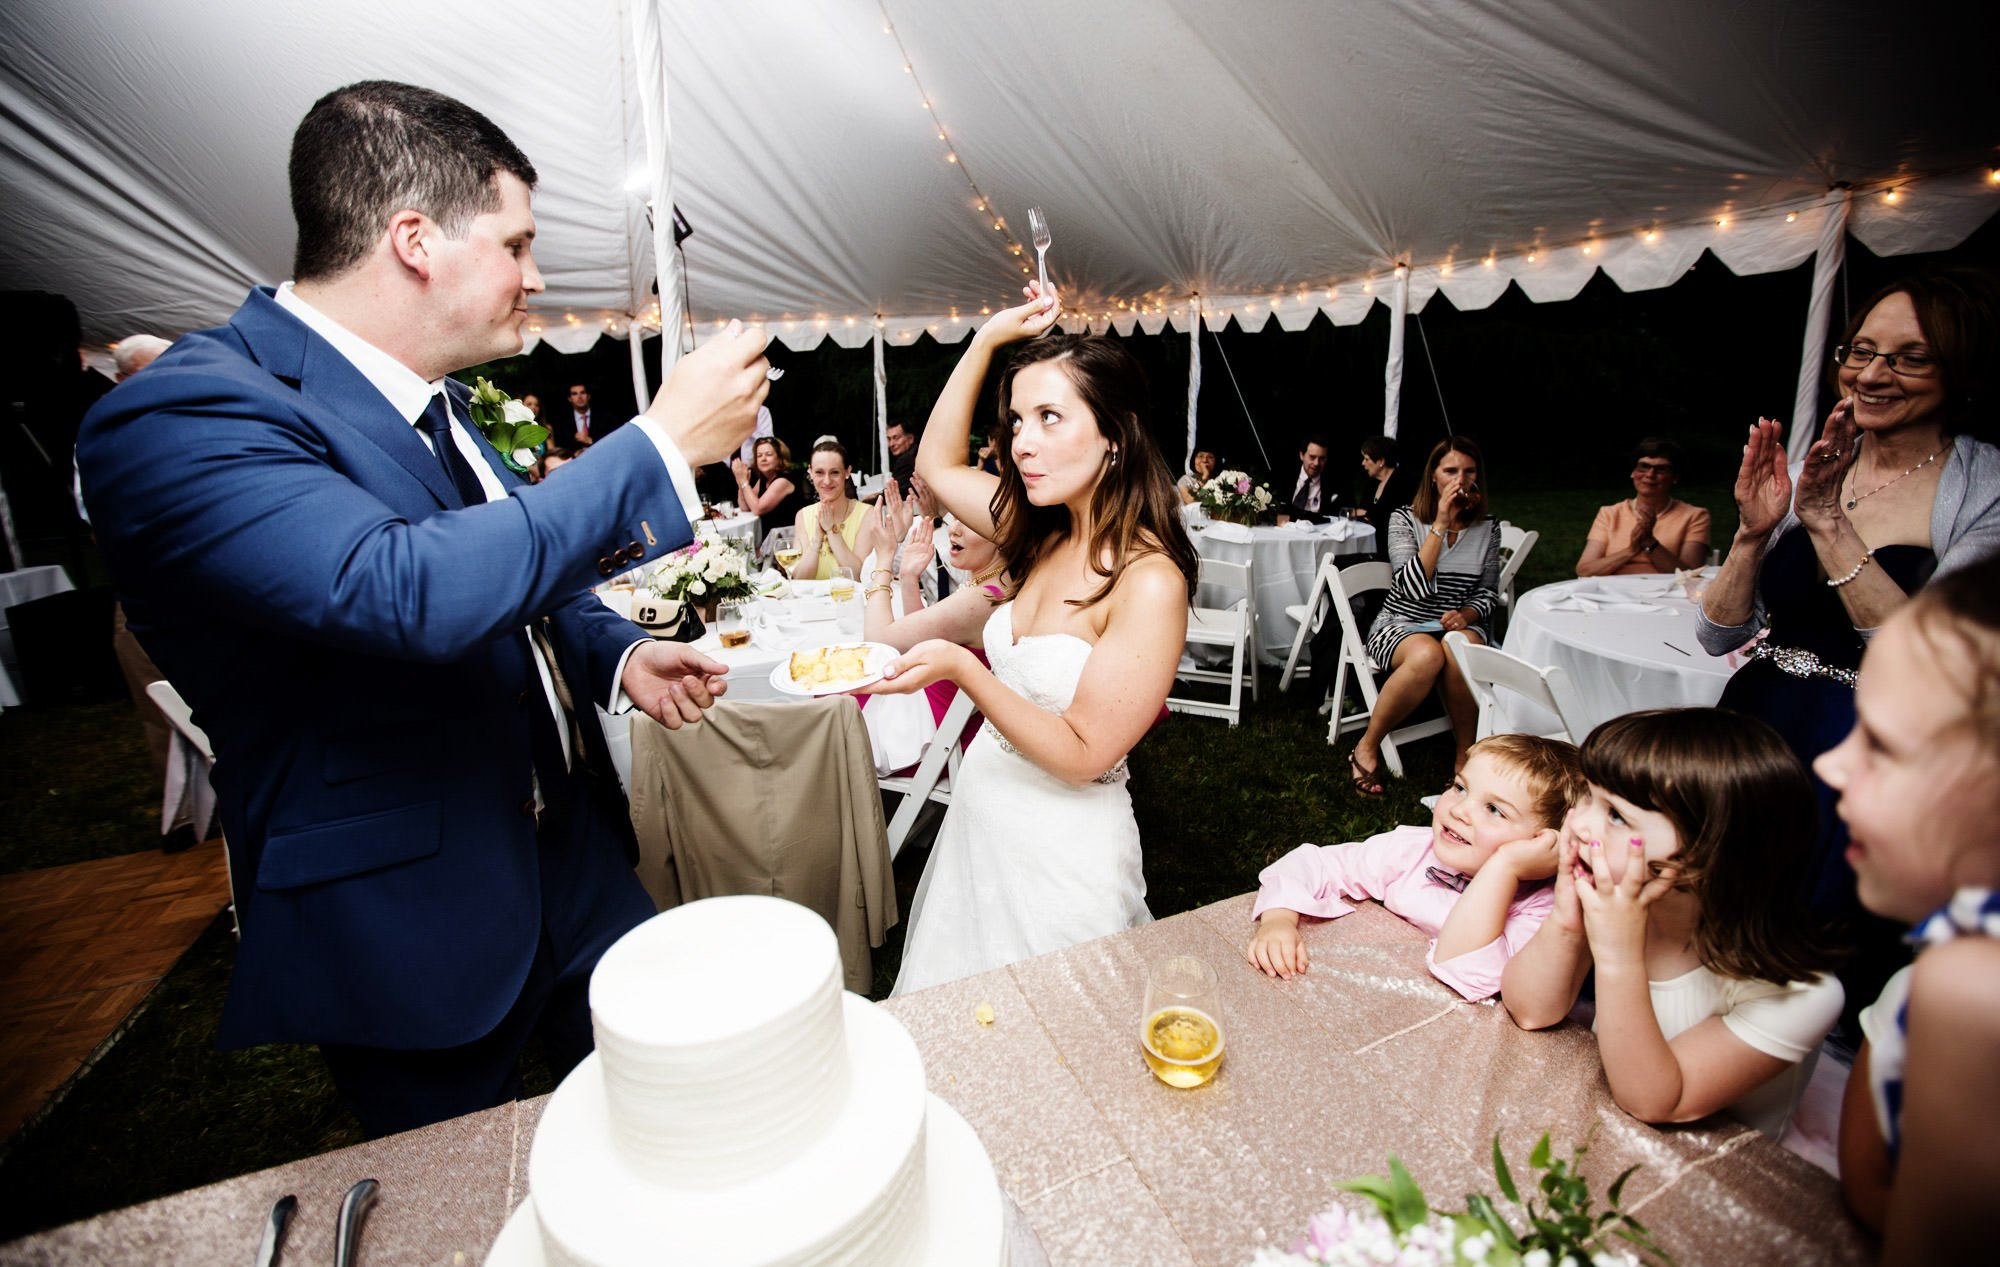 The bride and groom cut their cake during the wedding reception at Hendry House.